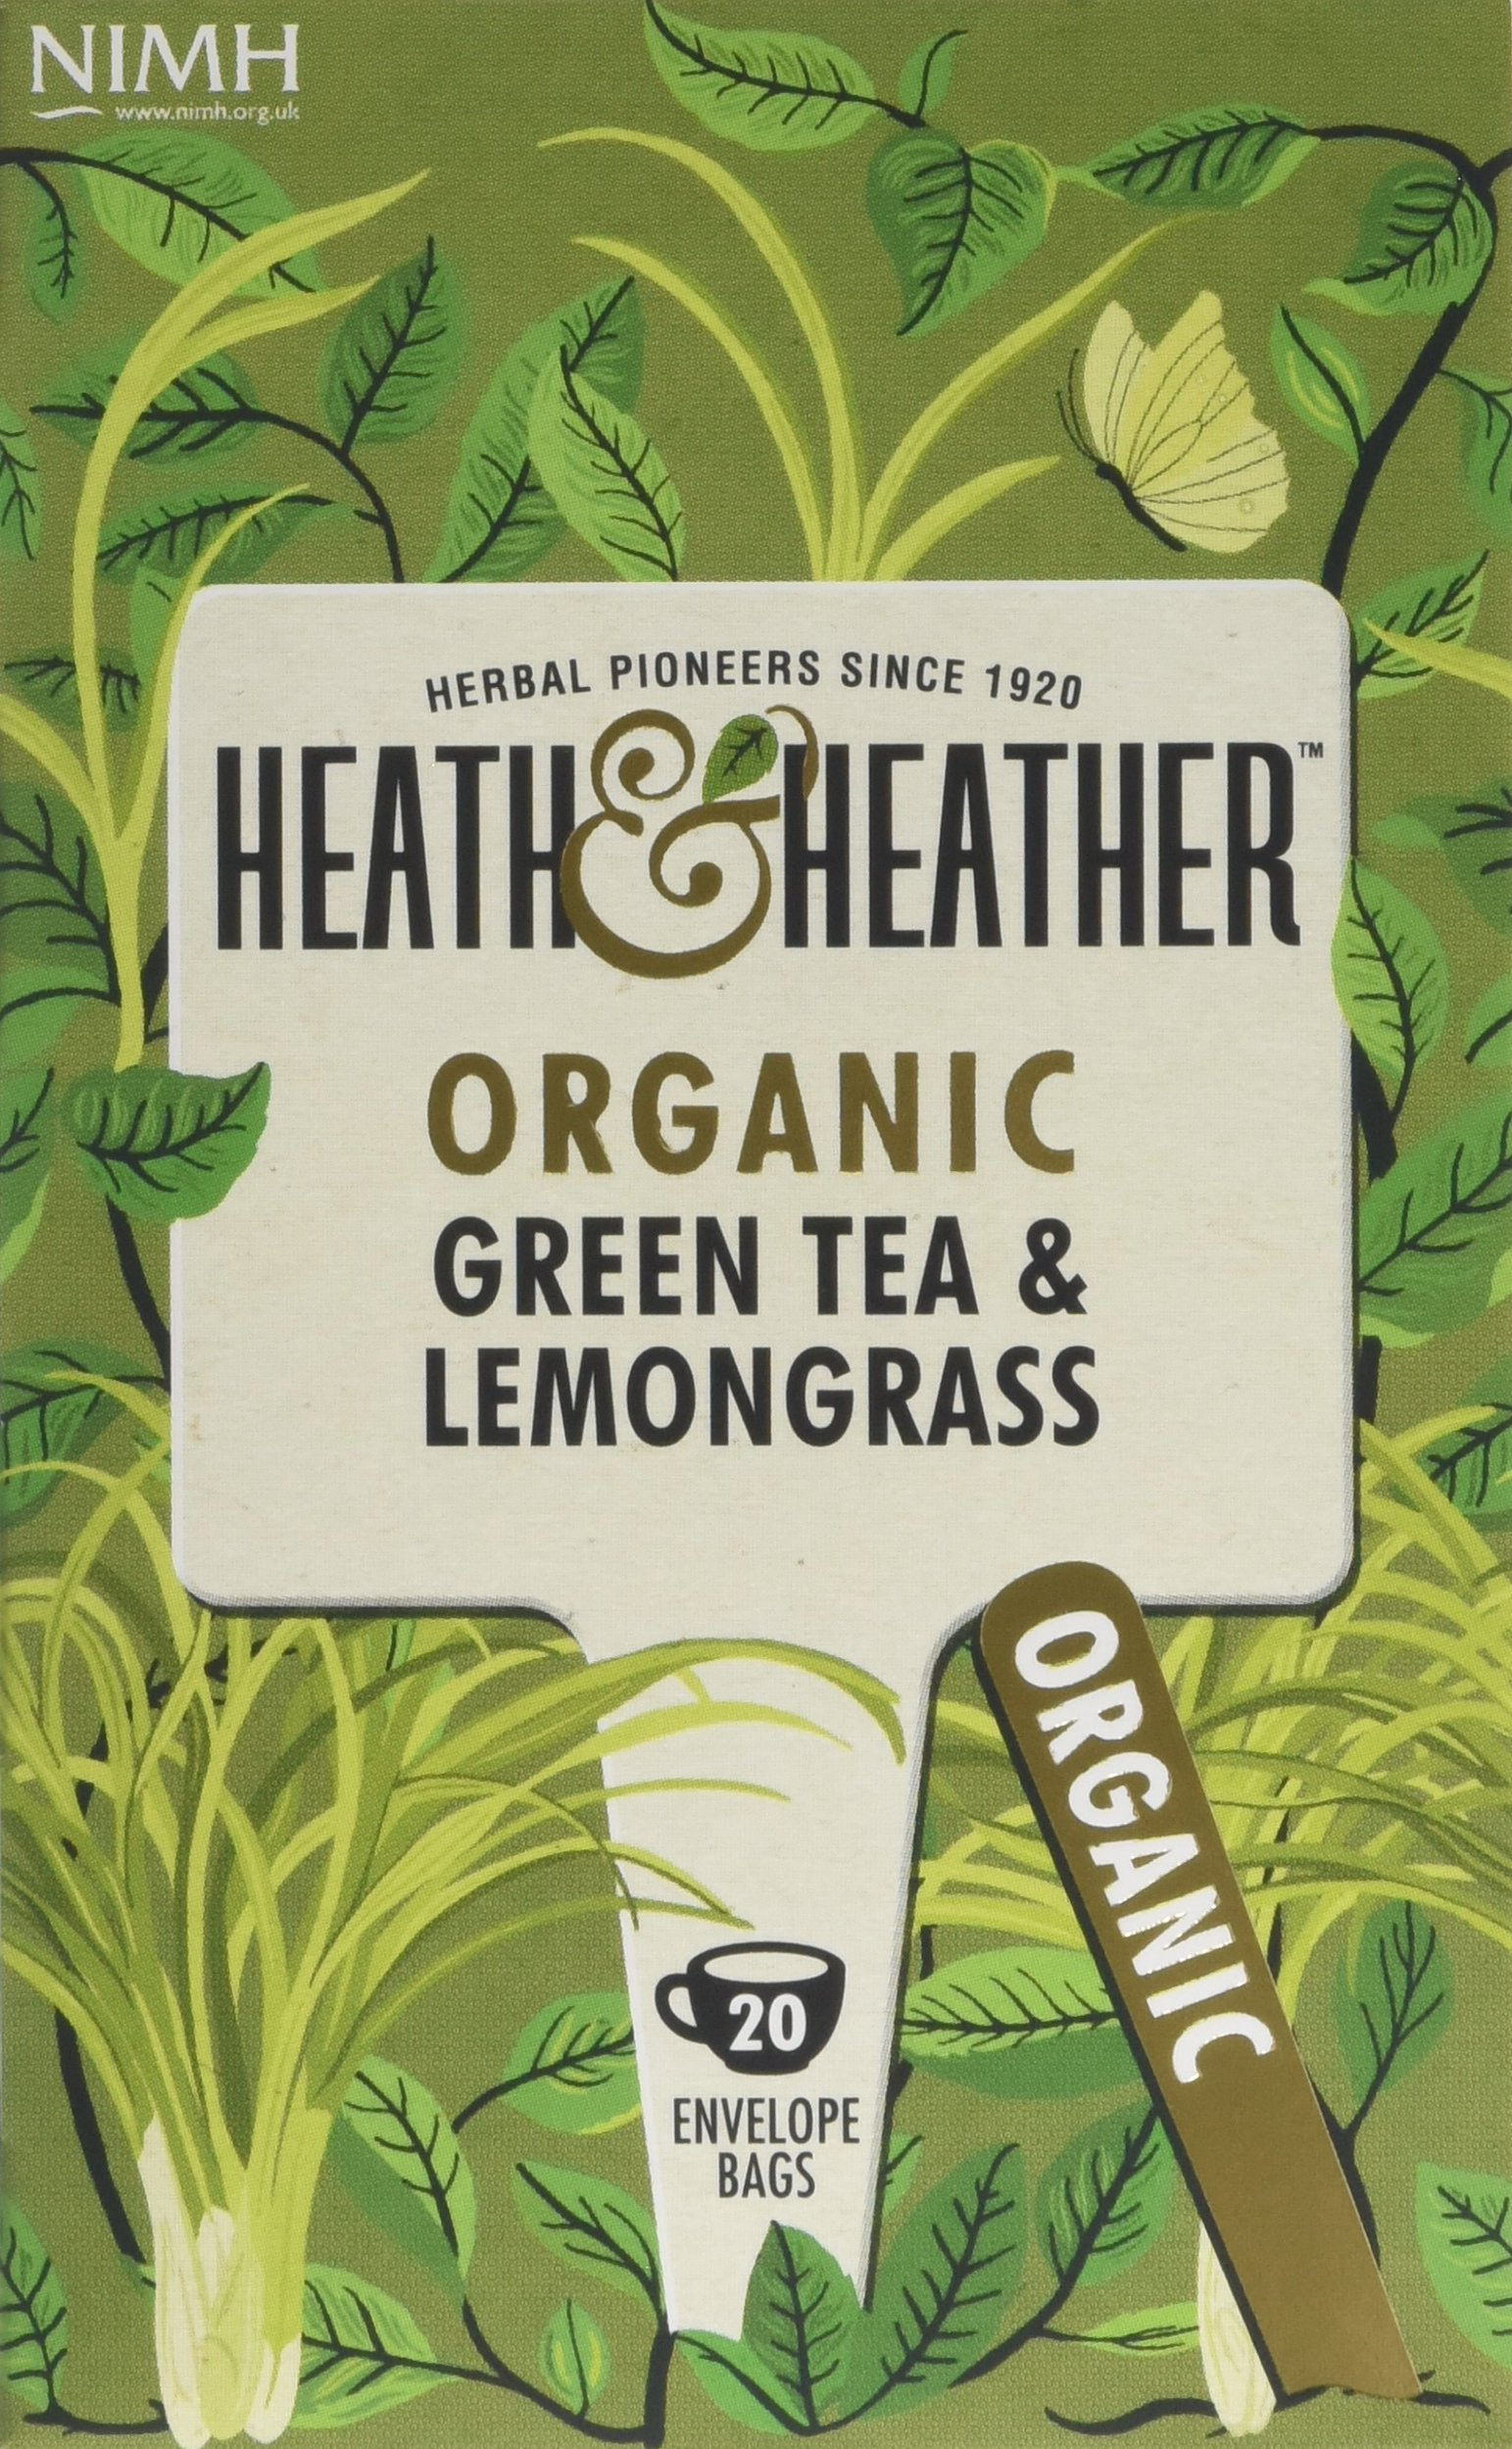 Heath & Heather organic green tea tea bundle (soil association) (green tea) (6 packs of 20 bags) (120 bags) (a vegetal tea with aromas of lemongrass) (brews in 2-3 minutes, up to 15 min)